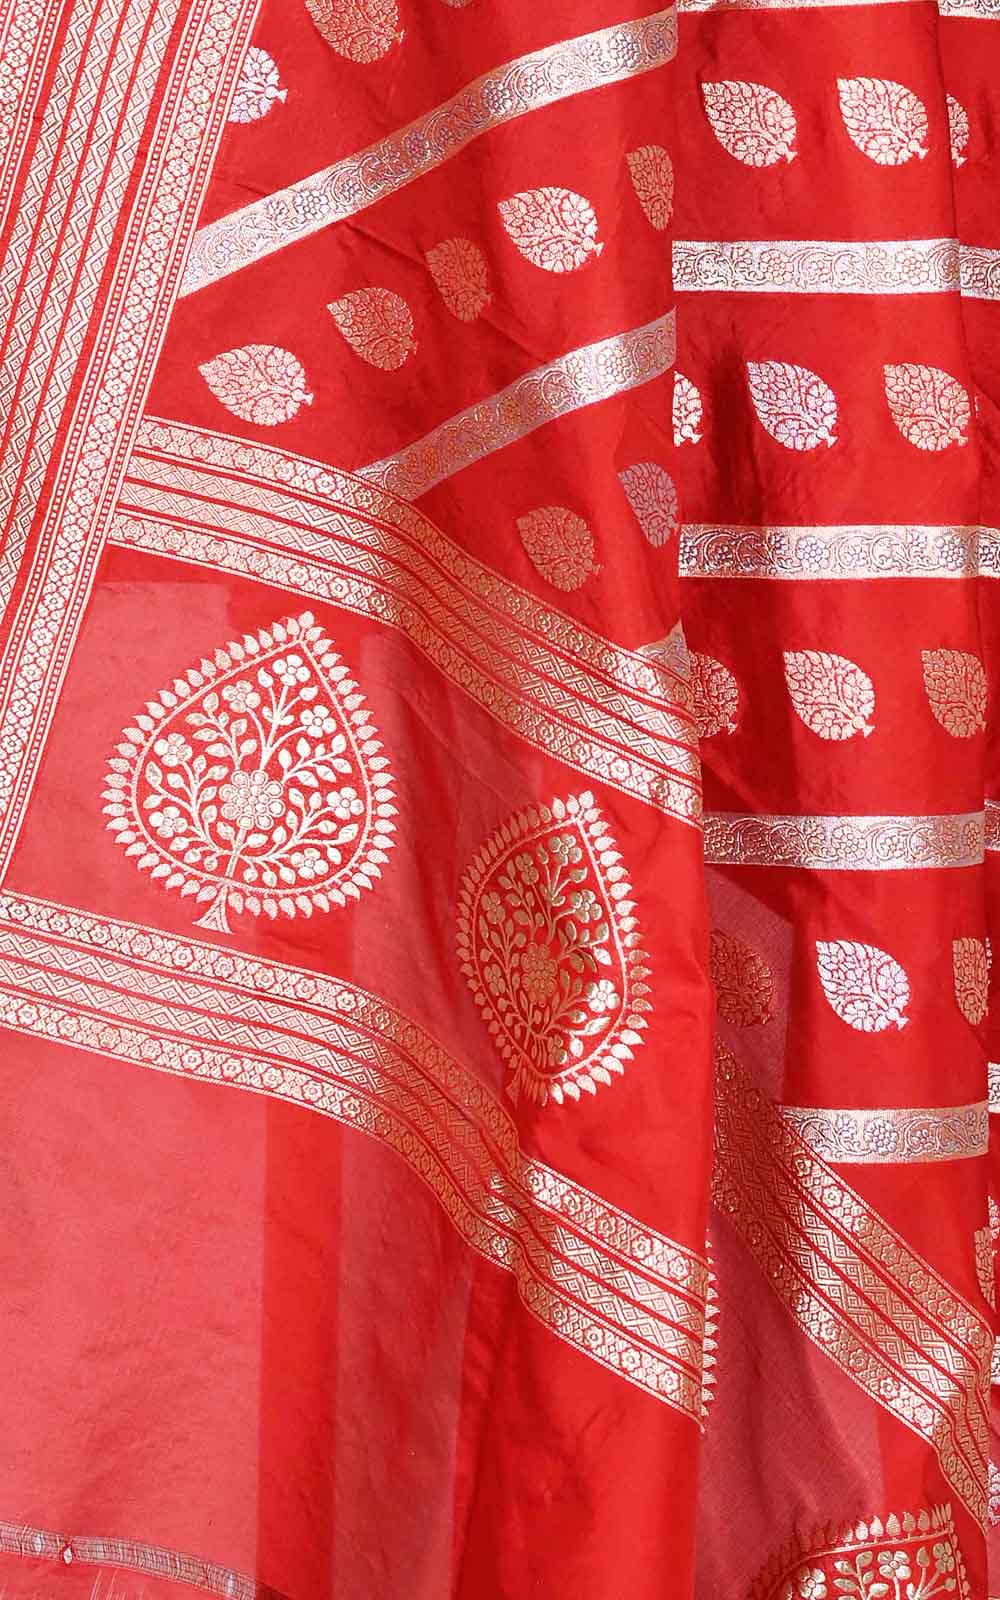 Red katan silk Banarasi dupatta with diagonal leaf boota (2) Close up